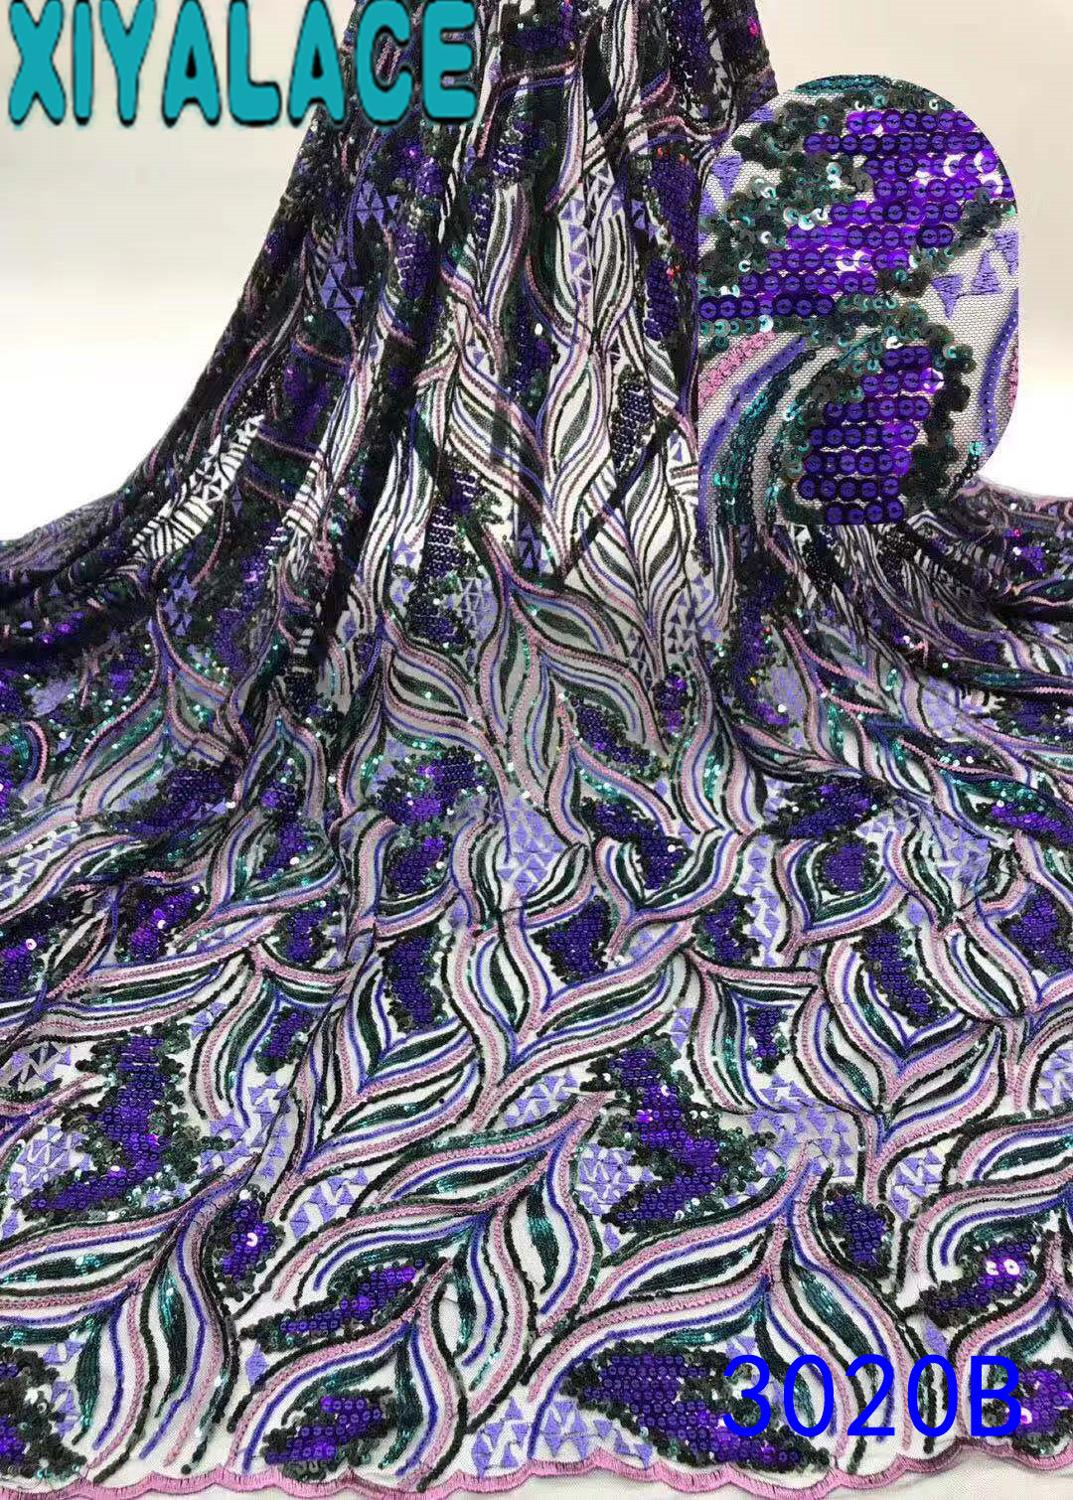 Hot Sale Sequence Lace Fabric Latest Nigerian Lace Fabric 2019 High Quality Tulle Laces For Asoebi Party KS3020B